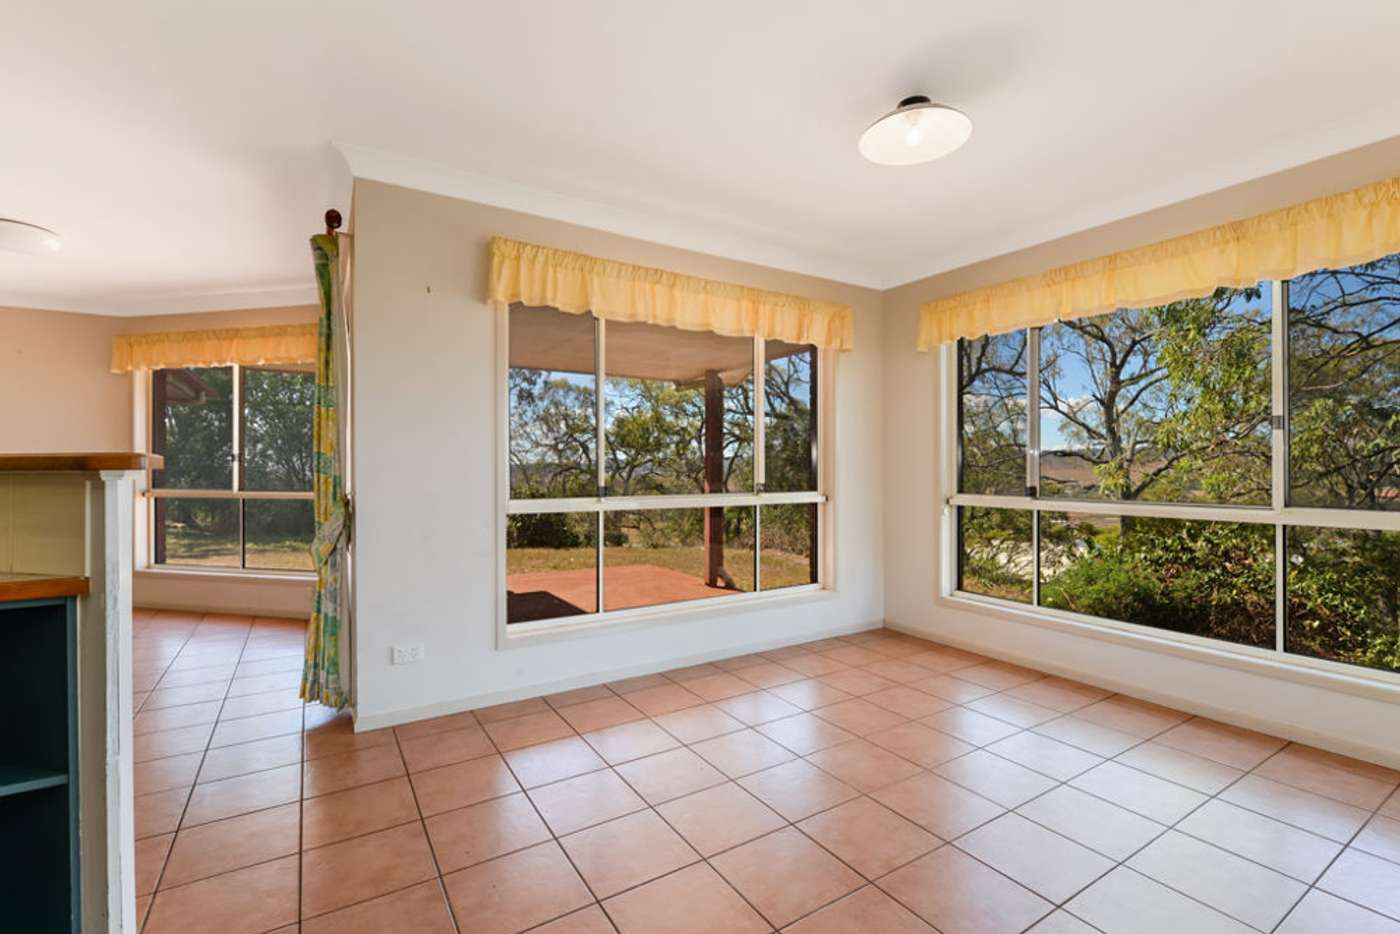 Sixth view of Homely house listing, 7 Ryans Drive, Cotswold Hills QLD 4350